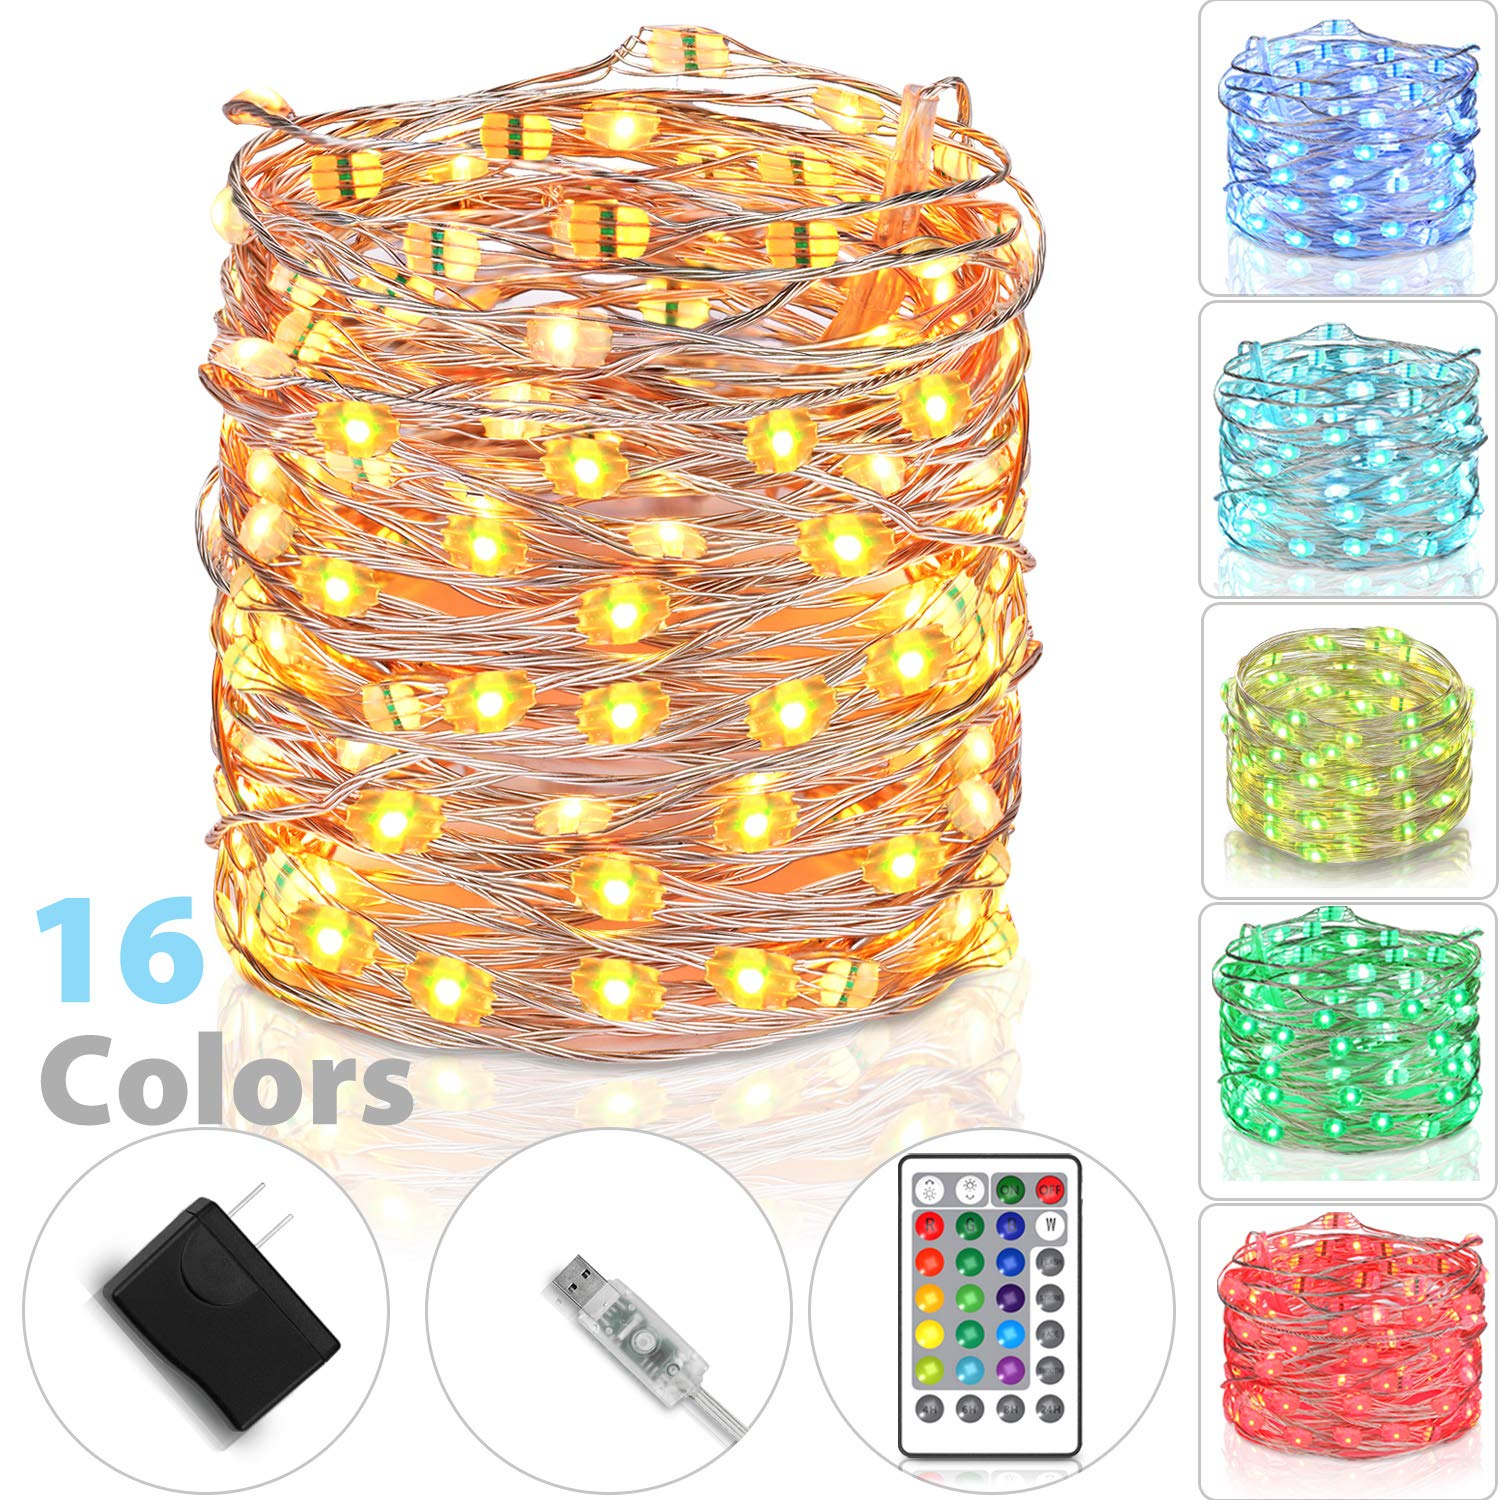 tesyker Fairy Lights, USB Powered Dimmable 16 Colors 33 Ft 100 LEDs Multicolor Silver Wire Color Lights Remote, Waterproof String Lights Indoor Bedroom Christmas Wedding Costume by tesyker